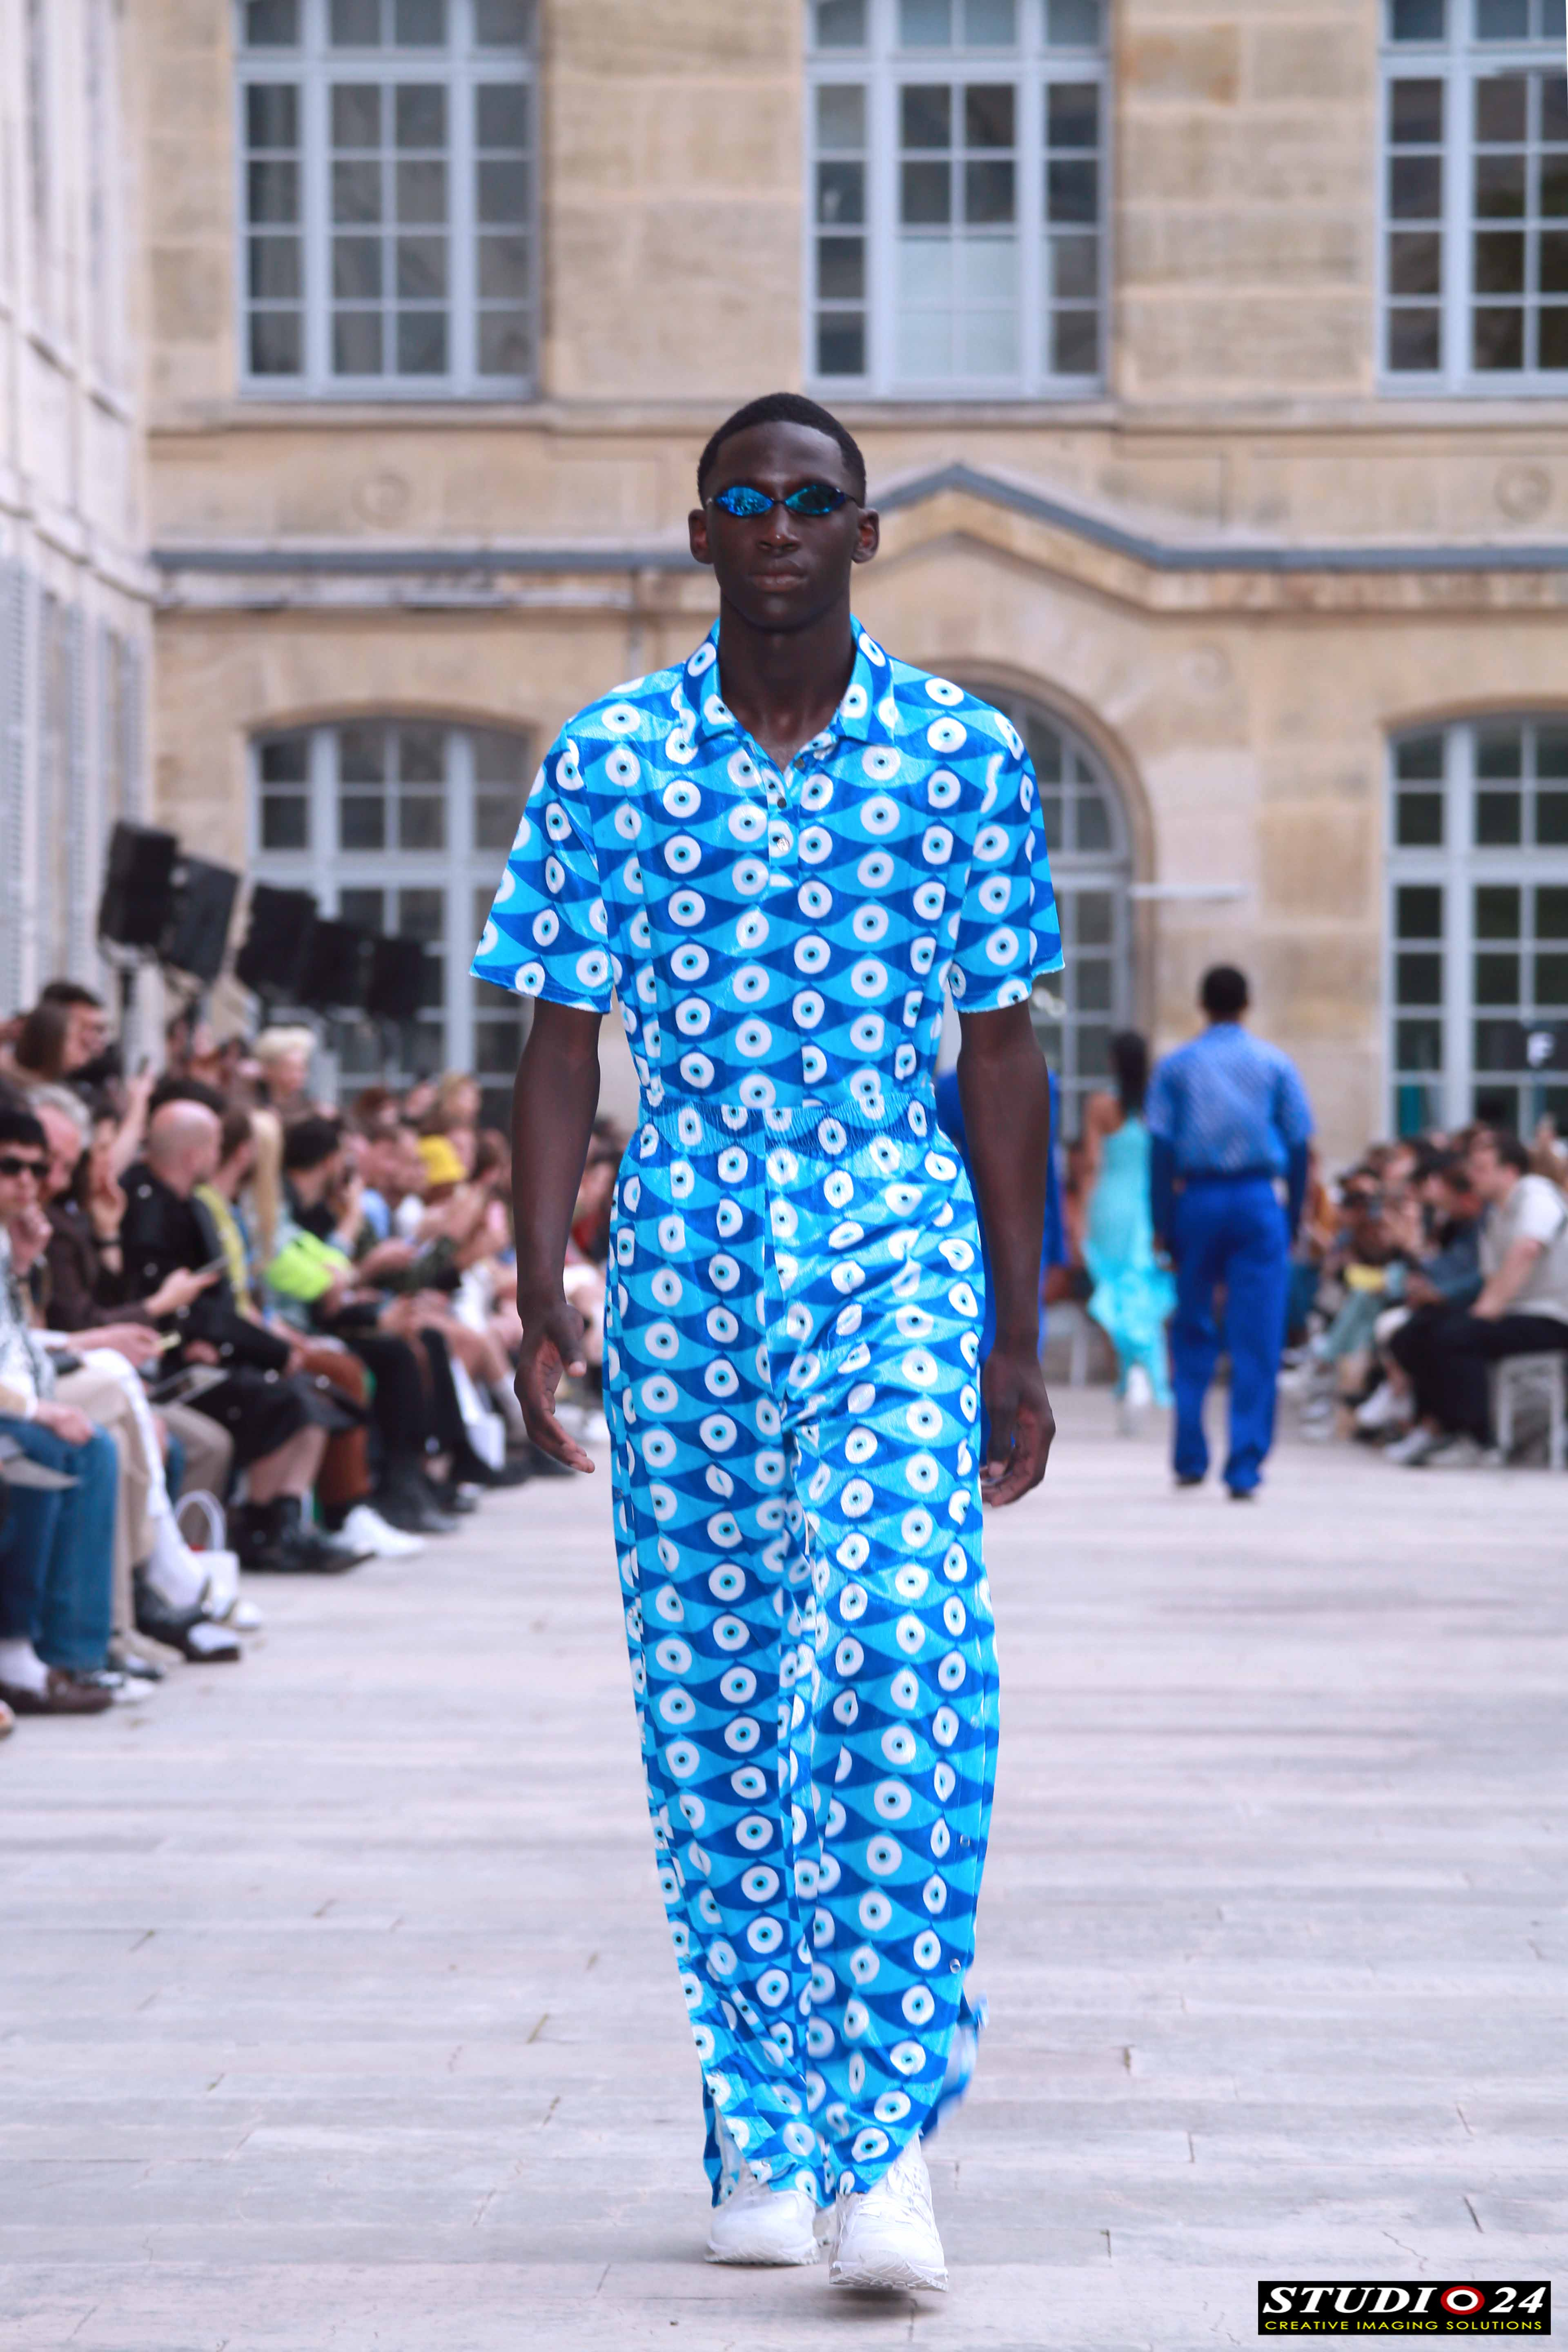 AFRICAN FASHION STYLE MAGAZINE – GmbH Show of Paris Fashion Week Men's SS20 - designers Serhat Isik and Benjamin Alexander Huseby- PR Robin Meason Founder and CEO of RITUAL PROJECTS - Photographer DAN NGU - Official Media Partner DN AFRICA - STUDIO 24 NIGERIA - STUDIO 24 INTERNATIONAL - Ifeanyi Christopher Oputa MD AND CEO OF COLVI LIMITED AND STUDIO 24 - CHEVEUX CHERIE and CHEVEUX CHERIE STUDIO BY MARIEME DUBOZ- Fashion Editor Nahomie NOOR COULIBALY